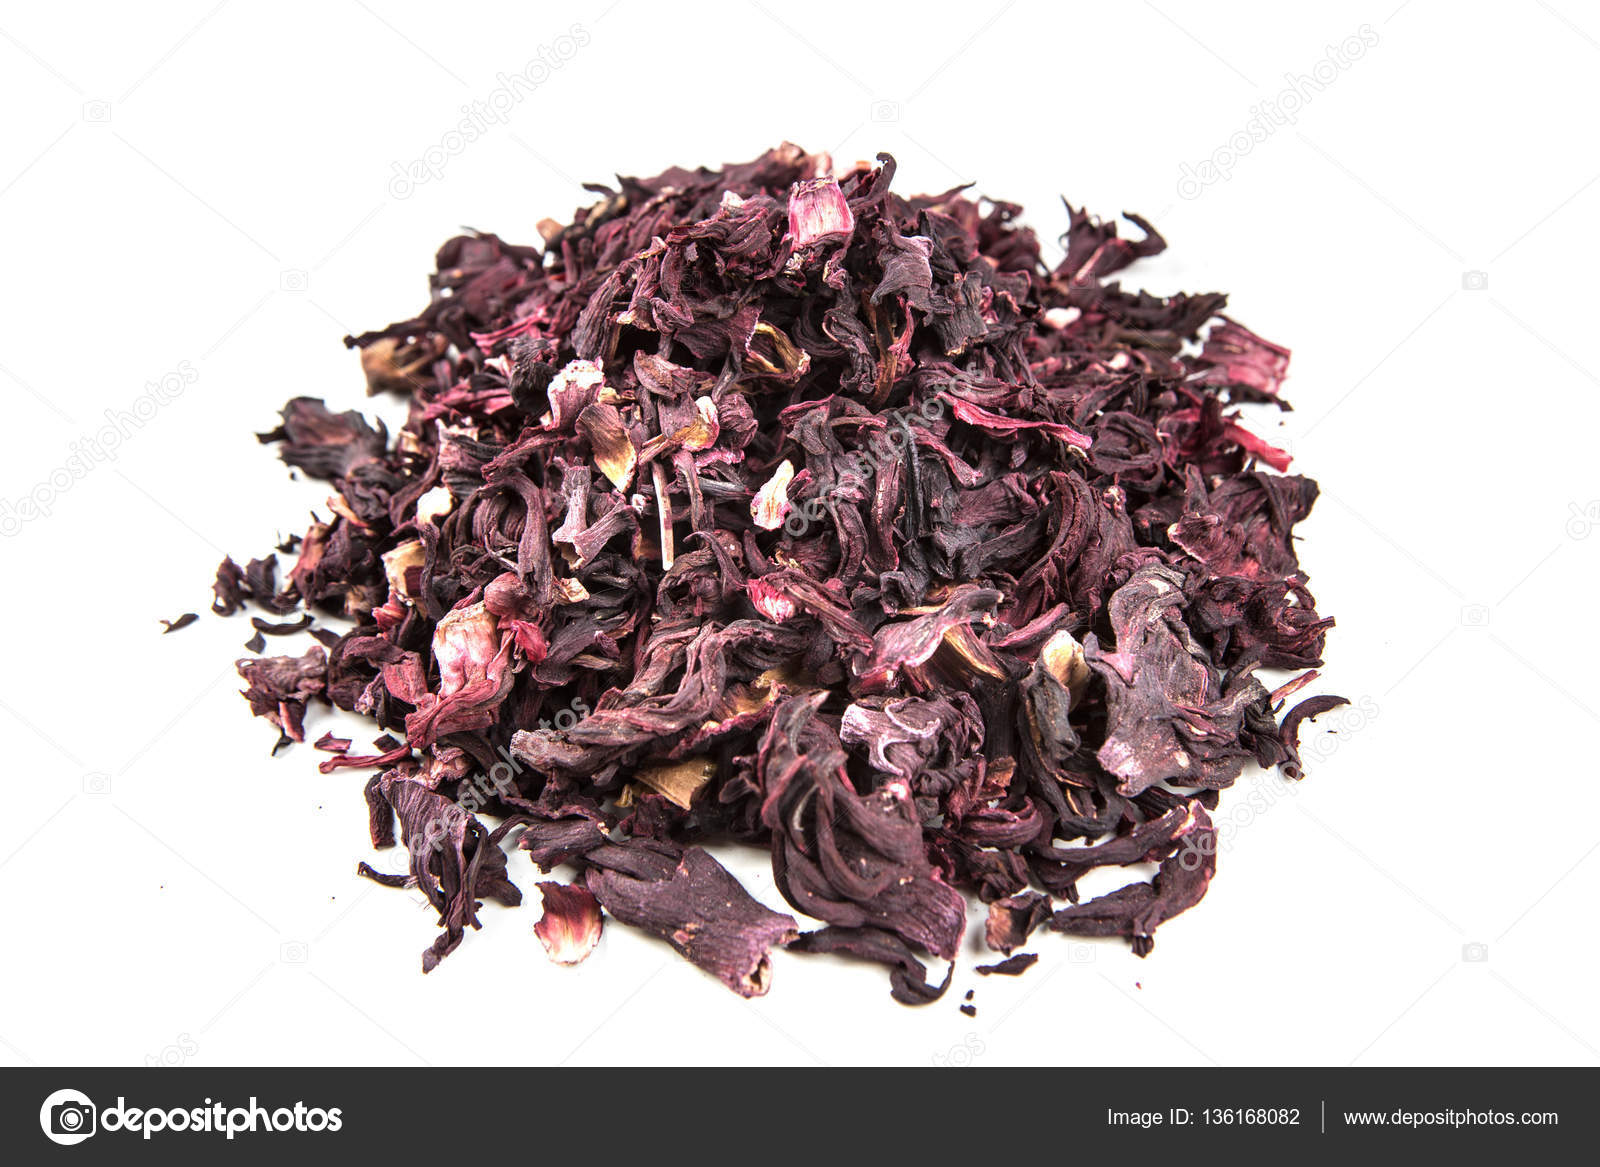 Dried hibiscus flower petals stock photo ecummings00 136168082 dried hibiscus flower petals stock photo izmirmasajfo